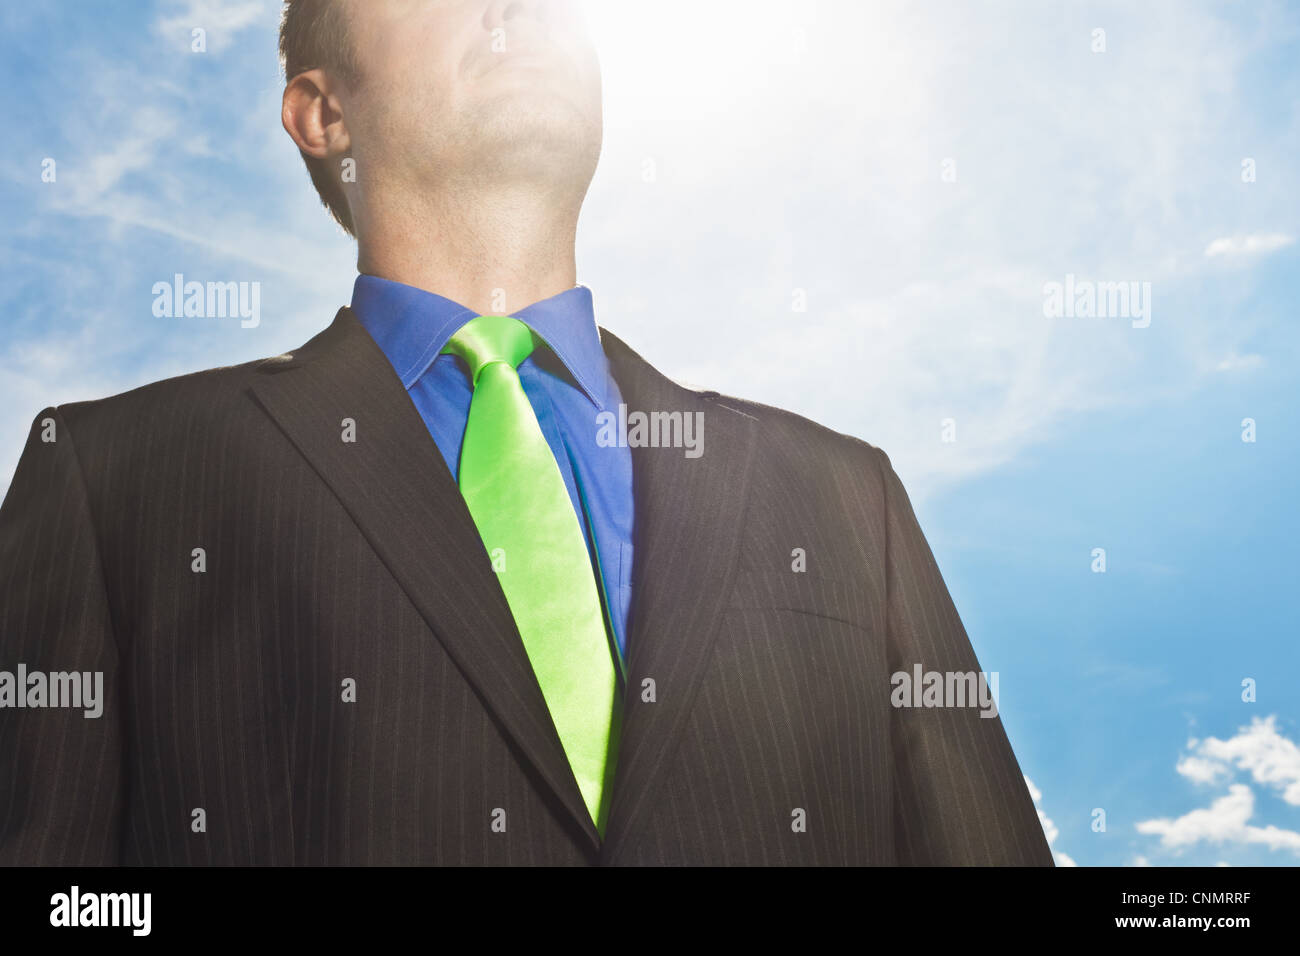 Close up of businessman's suit - Stock Image